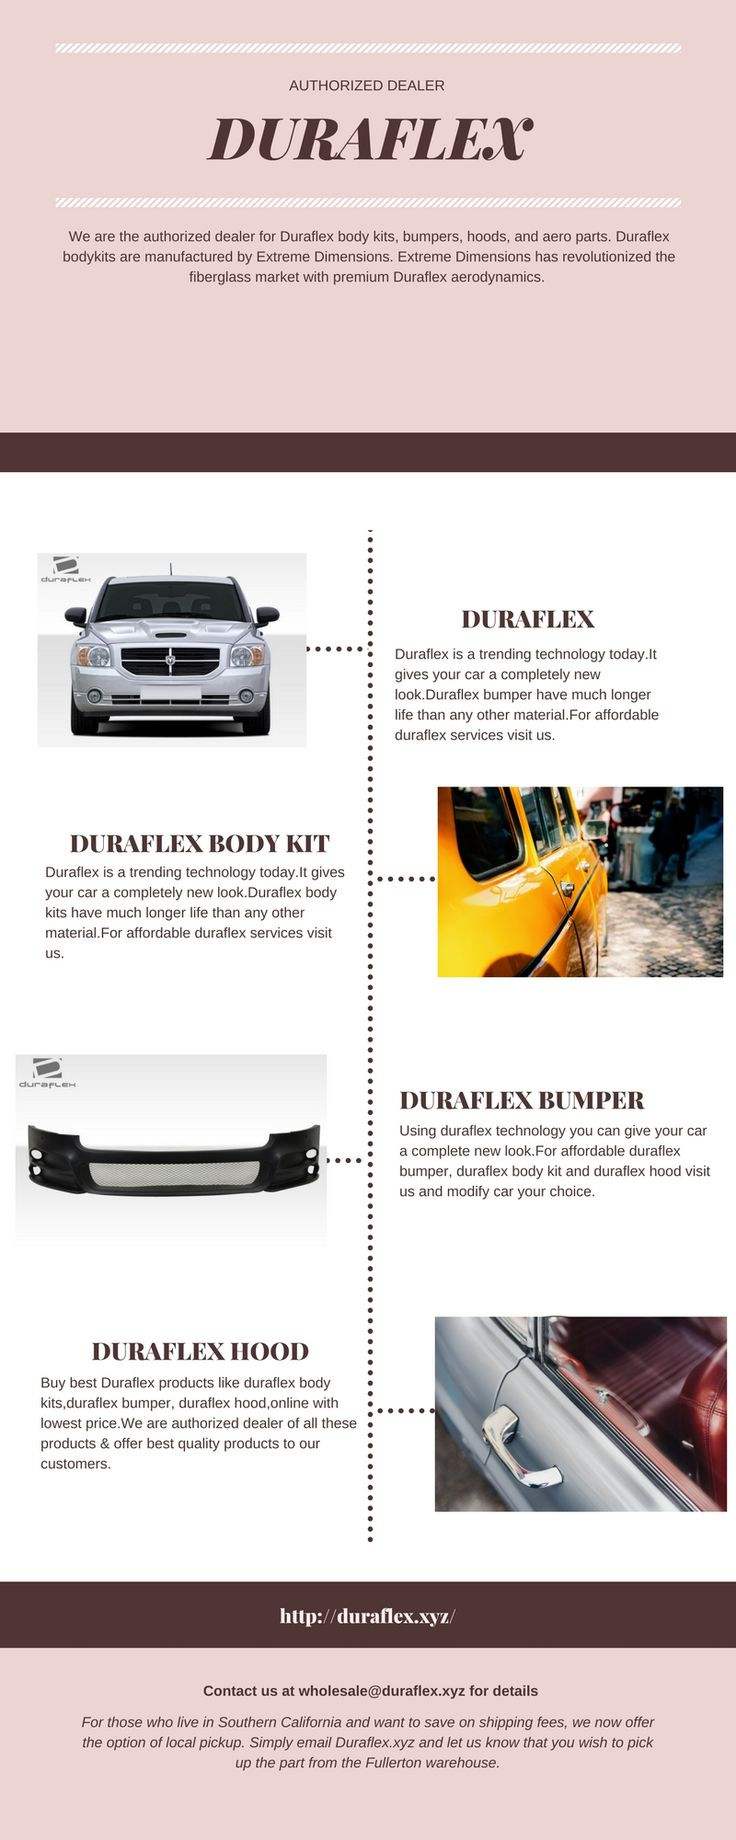 14 best Cars Modification images on Pinterest | Duraflex body kits ...